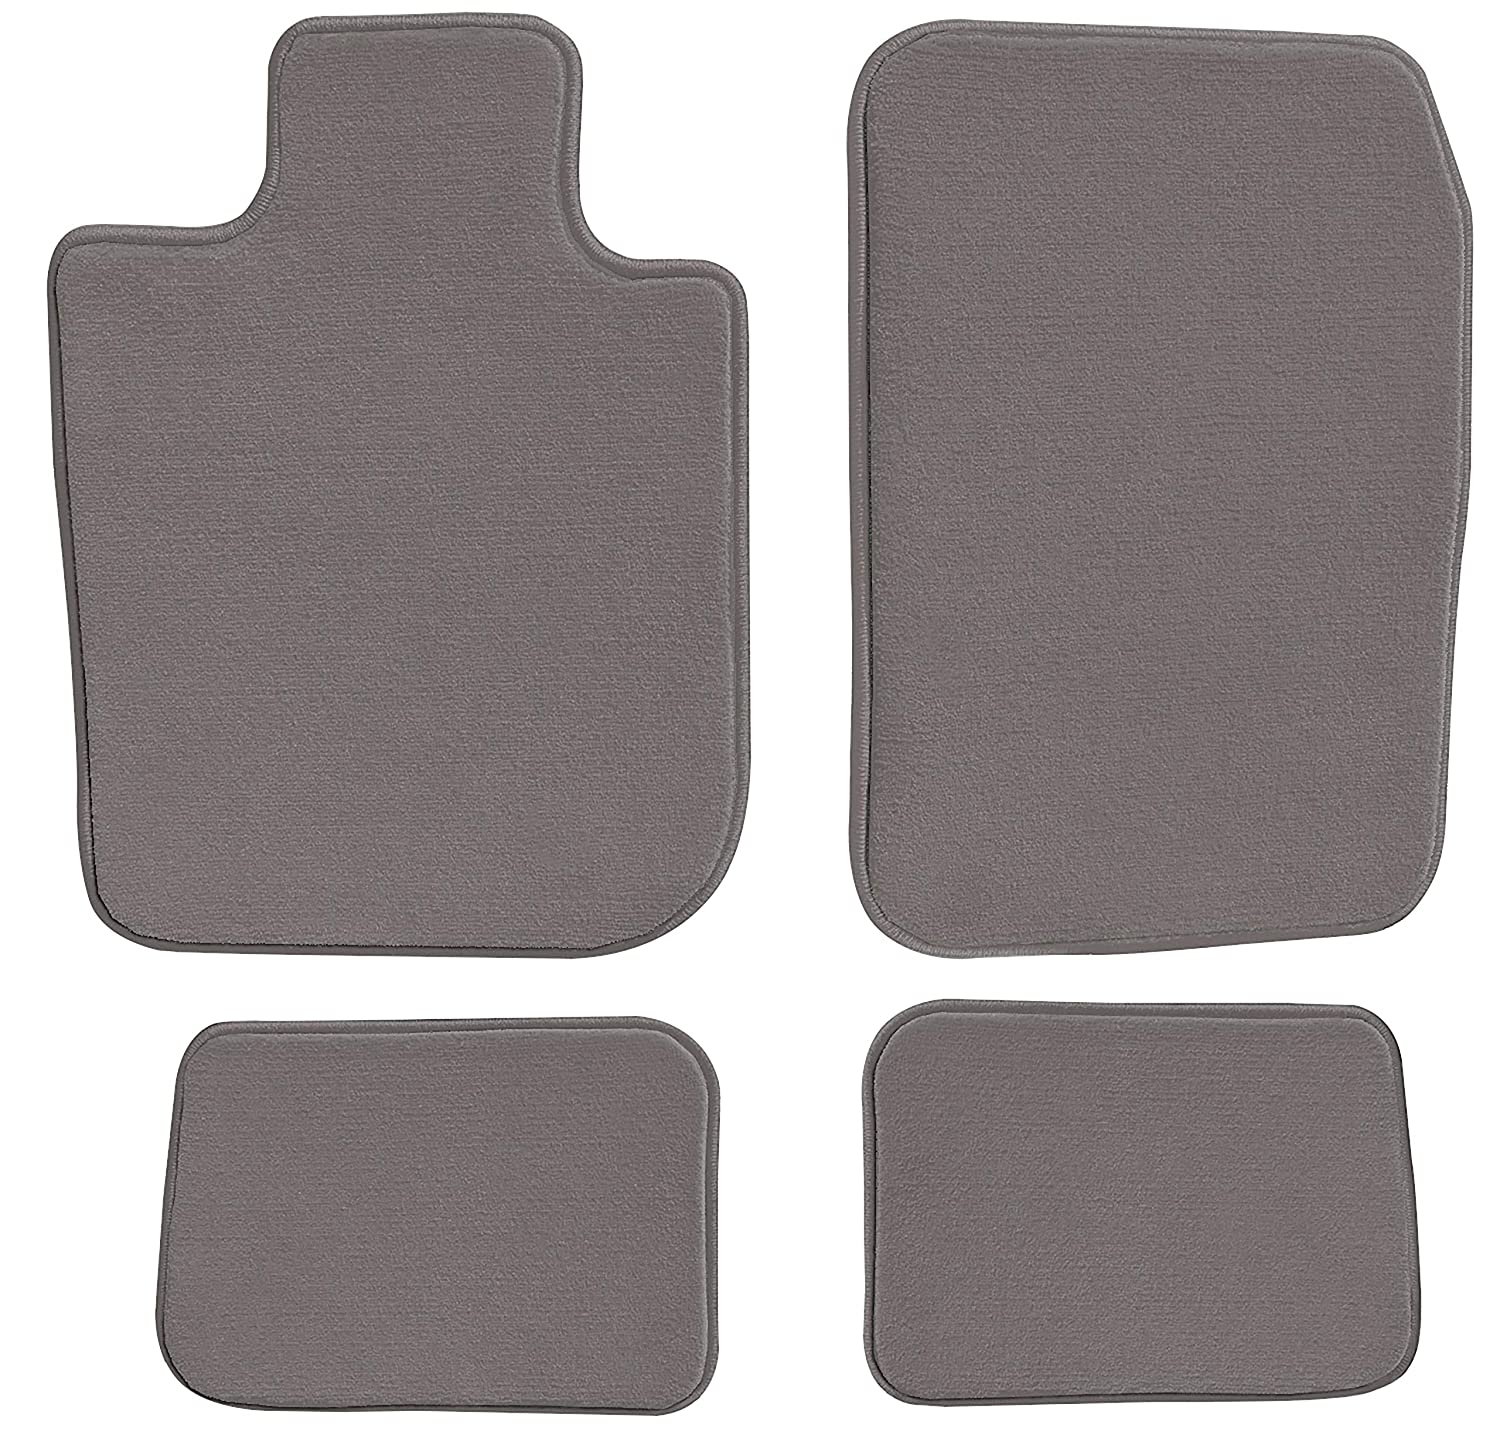 GGBAILEY D3826A-S1A-GY-LP Custom Fit Car Mats for 2010 Passenger /& Rear Floor 2012 2013 2011 2014 Chevrolet Silverado 1500 Crew Cab Grey Loop Driver